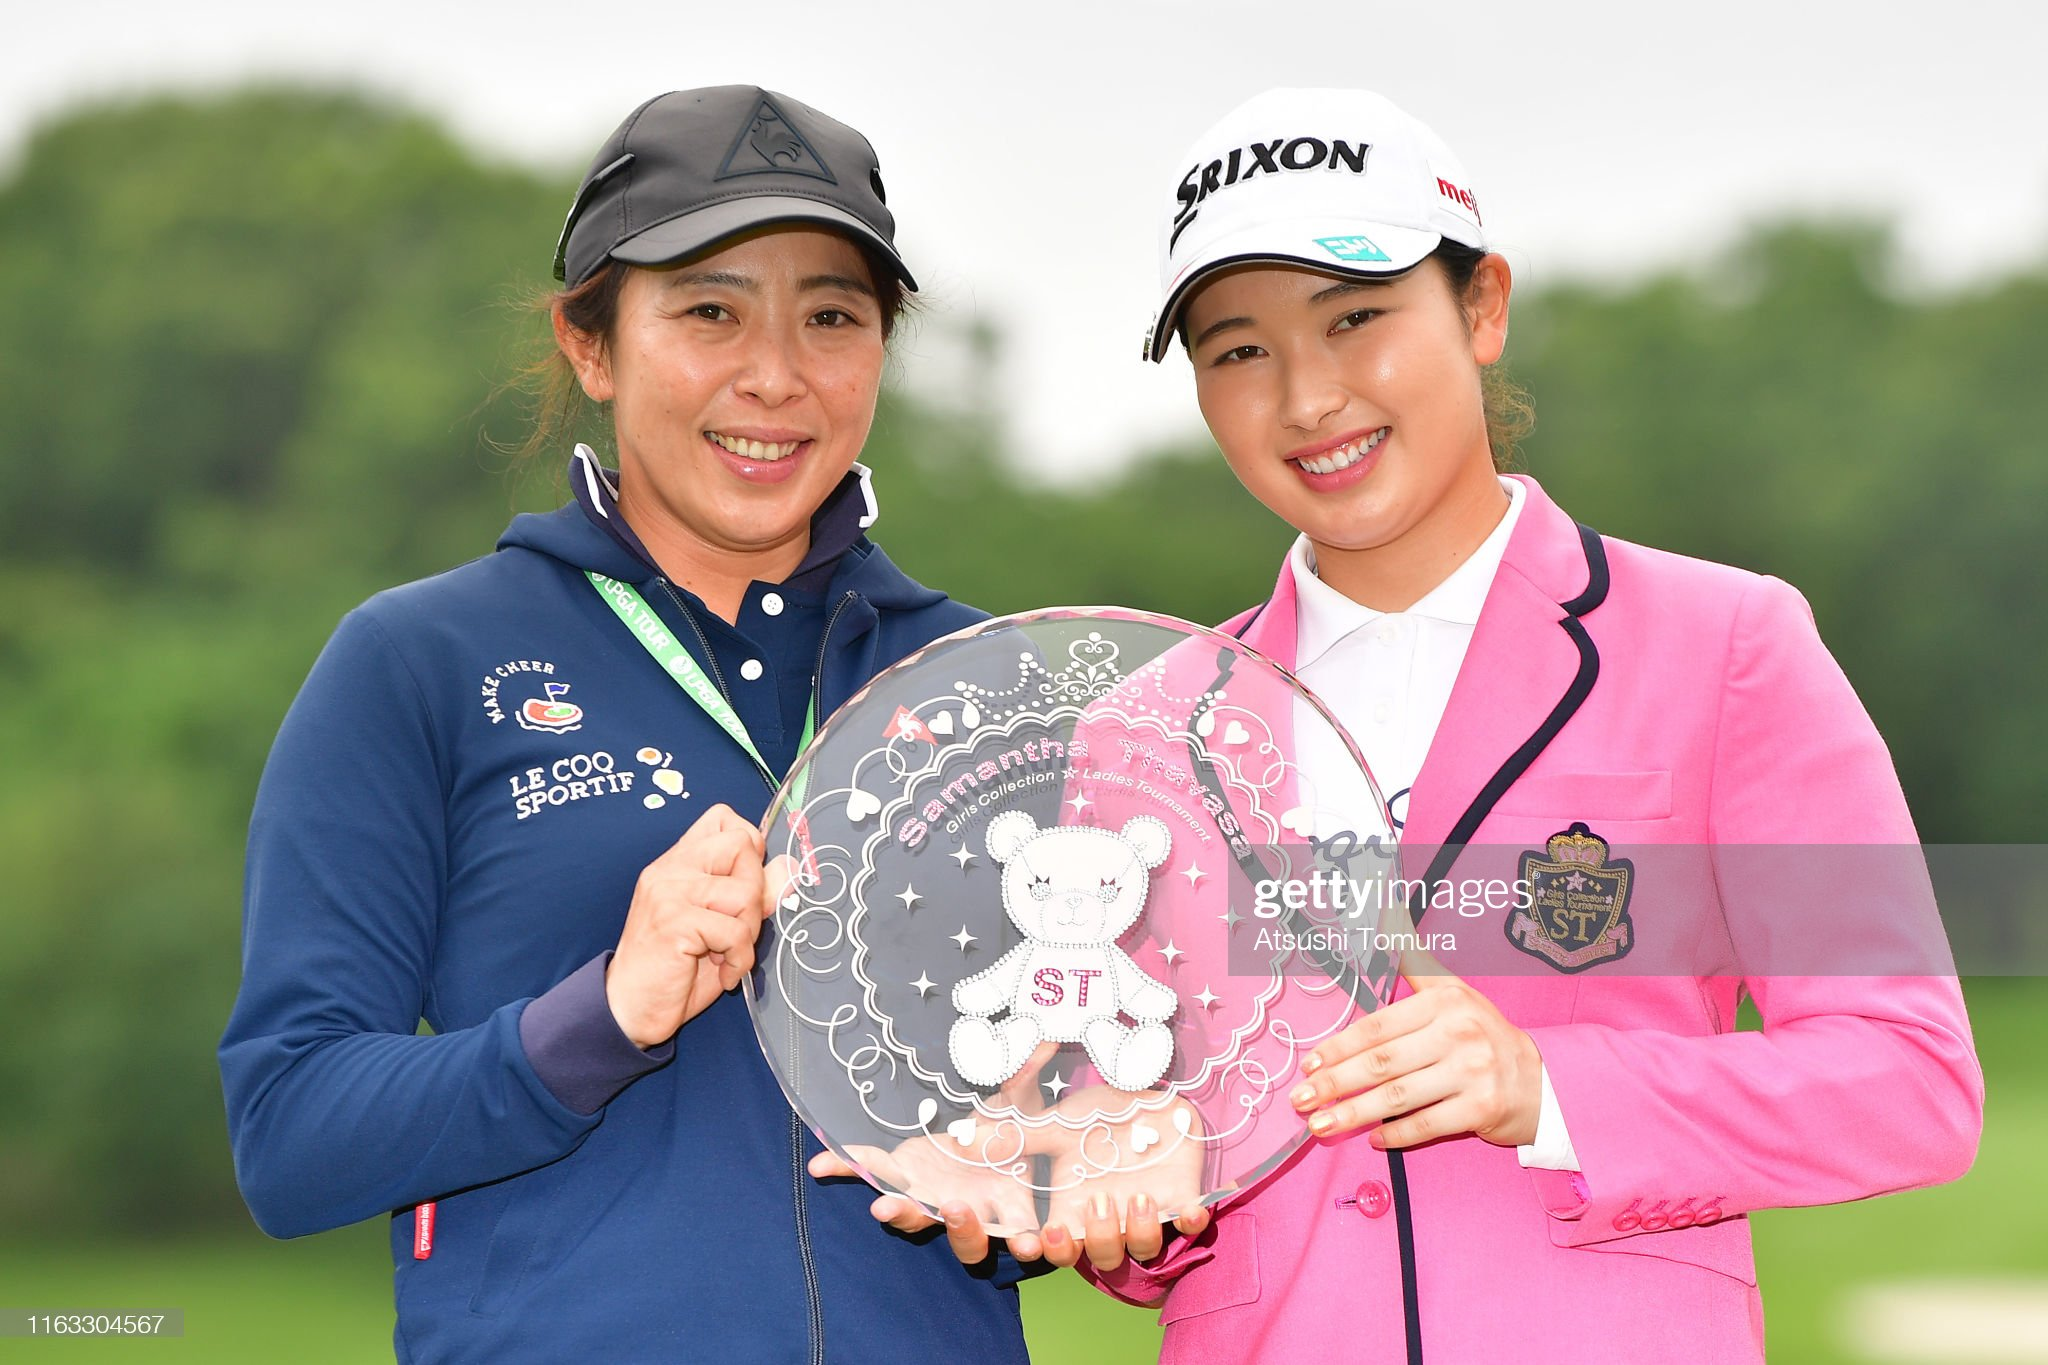 https://media.gettyimages.com/photos/sakura-koiwai-of-japan-and-her-mother-hitomi-koiwai-pose-with-the-picture-id1163304567?s=2048x2048